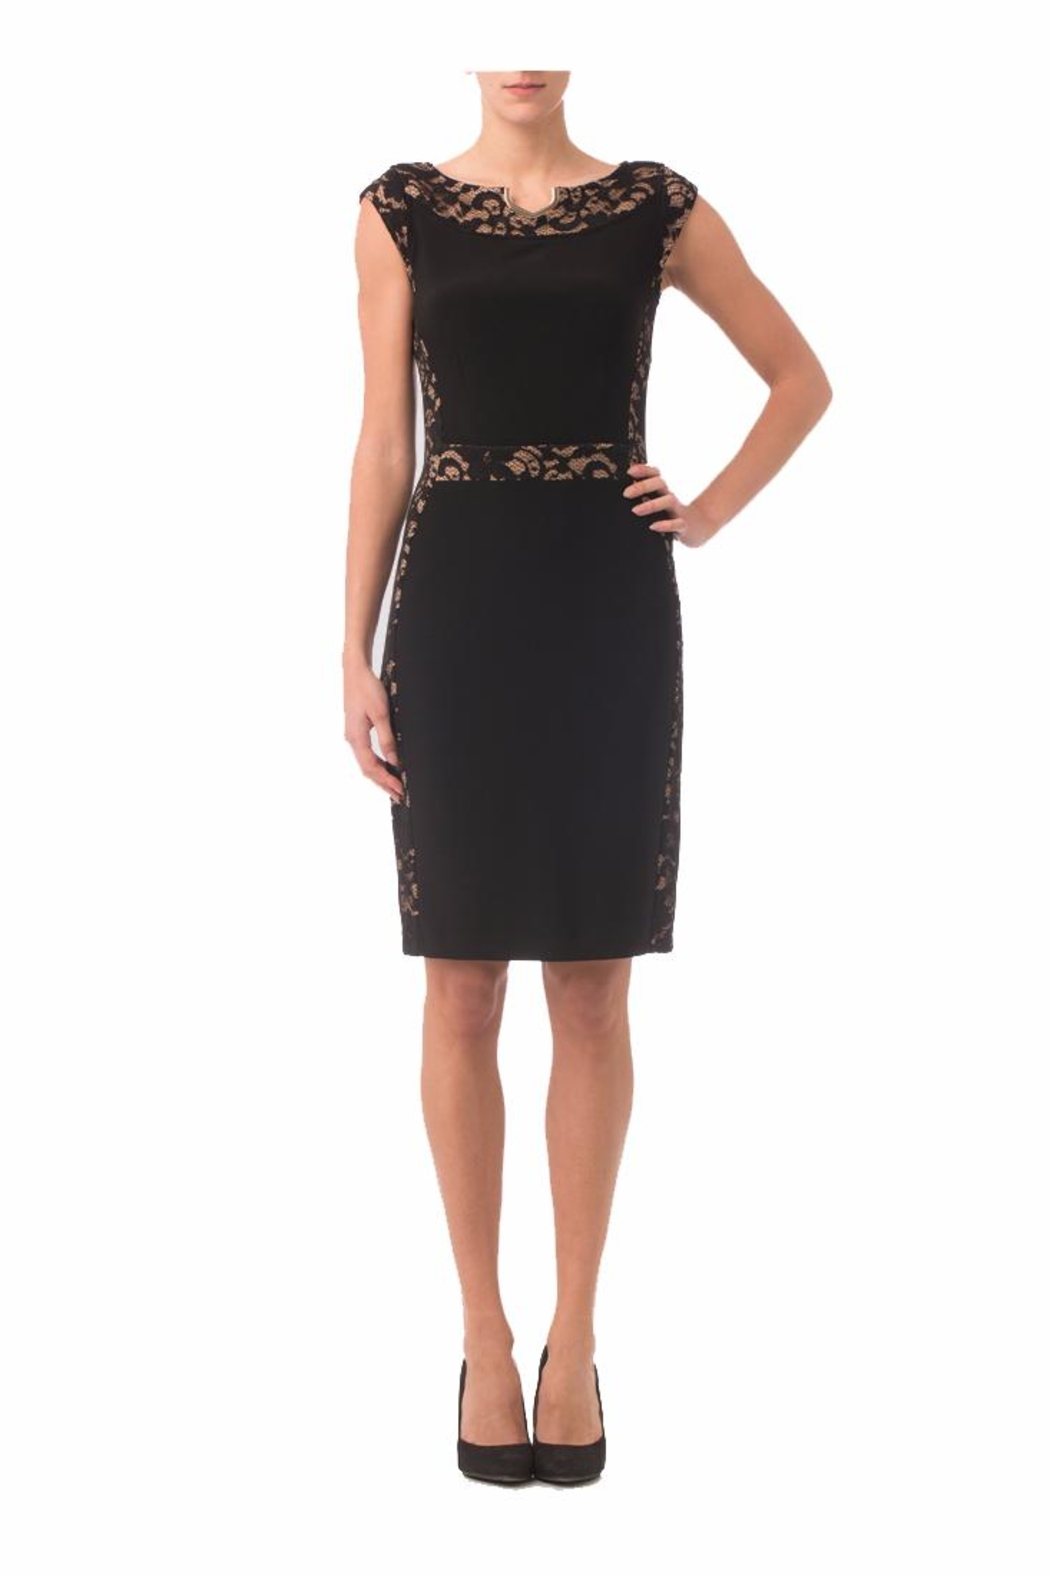 Joseph Ribkoff Black sheath Dress - Main Image